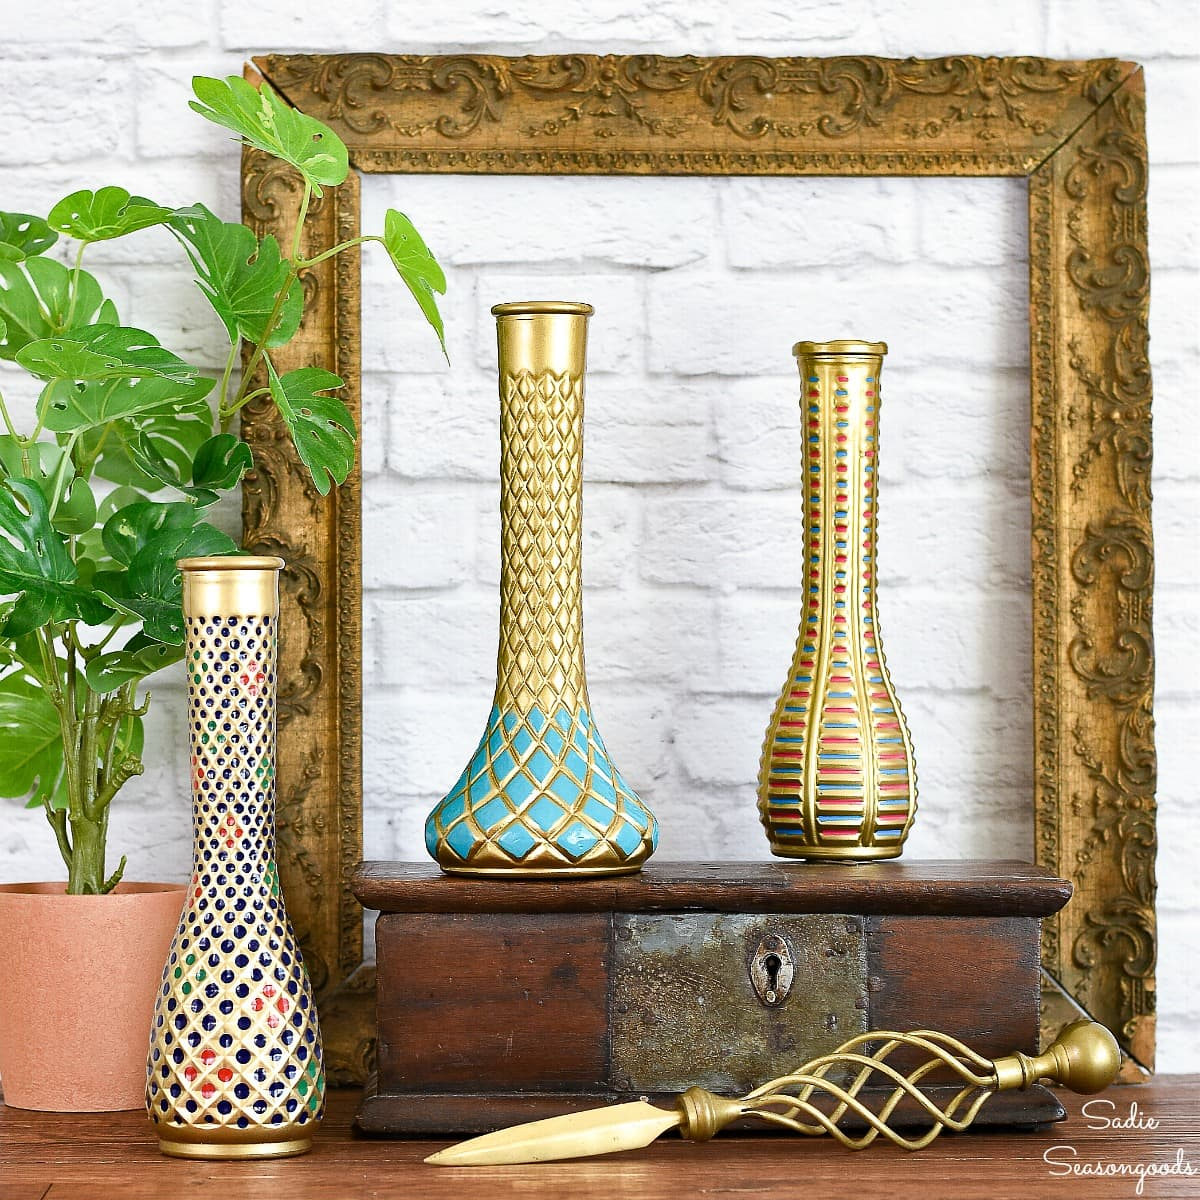 Florist to Cloisonne vase makeovers by Sadie Seasongoods, featured on DIY Salvaged Junk Projects 528 on Funky Junk!